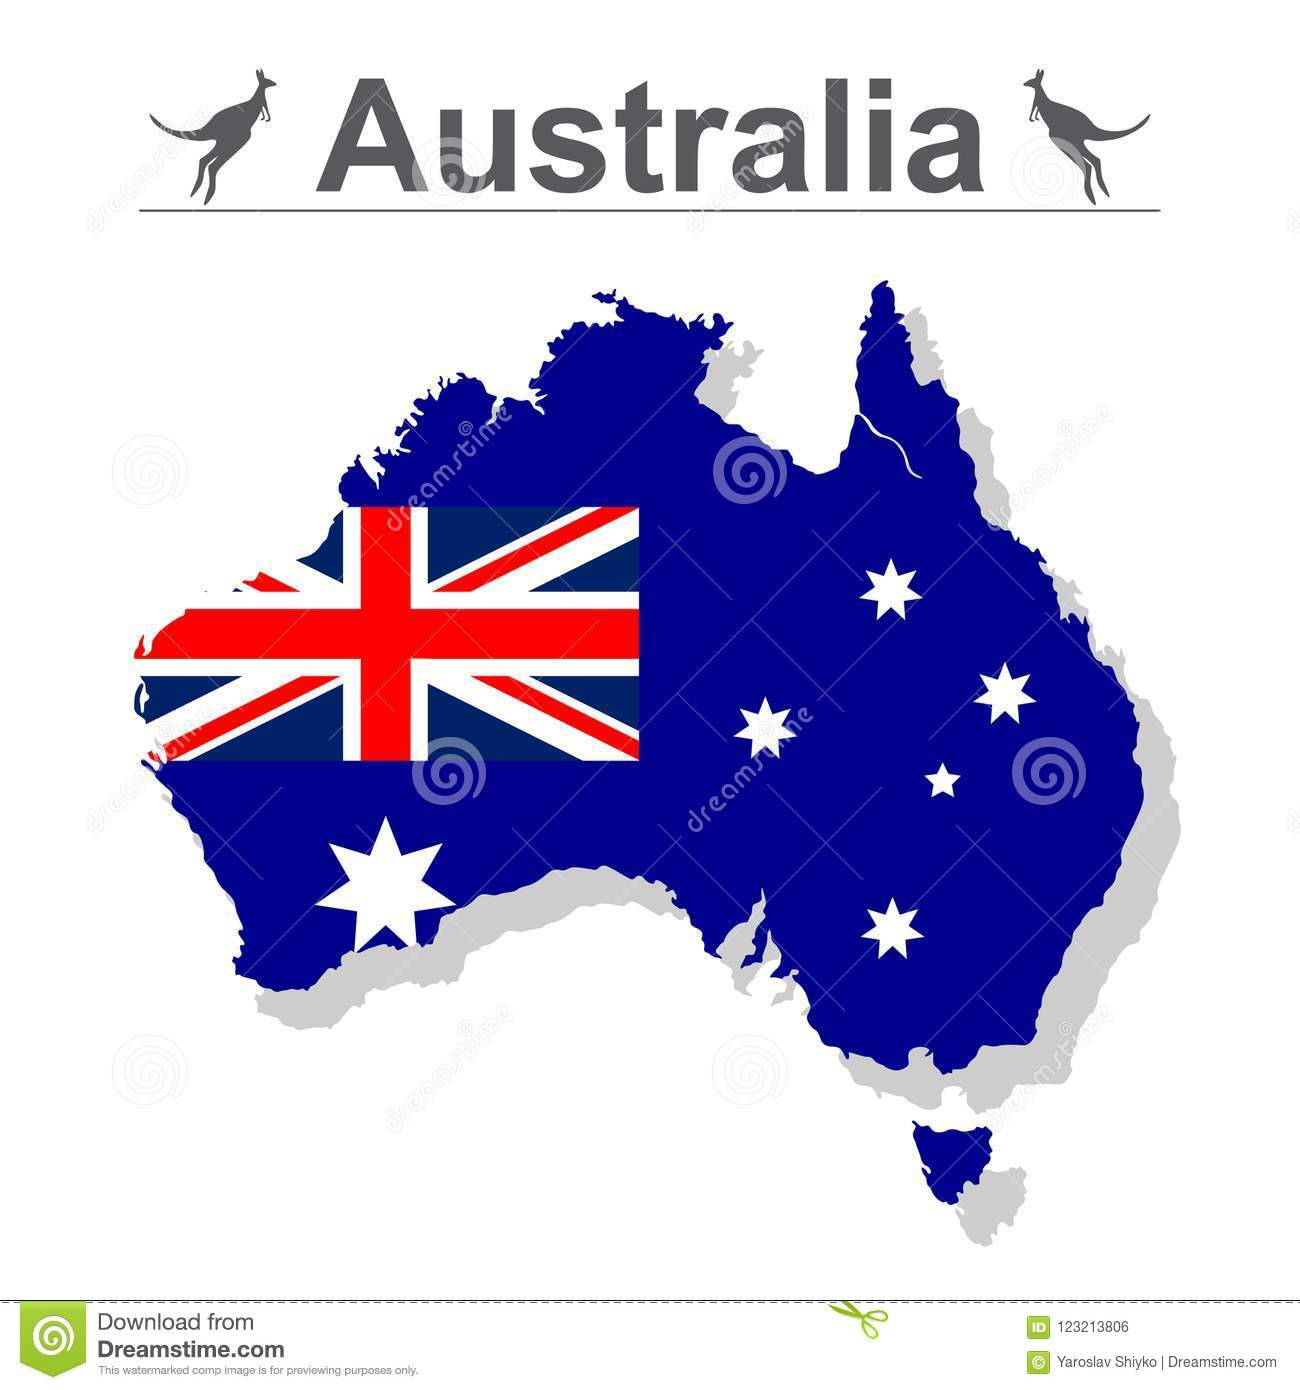 Australia Map With Flag.Australia Map With Flag Isolated Against White Background Vector